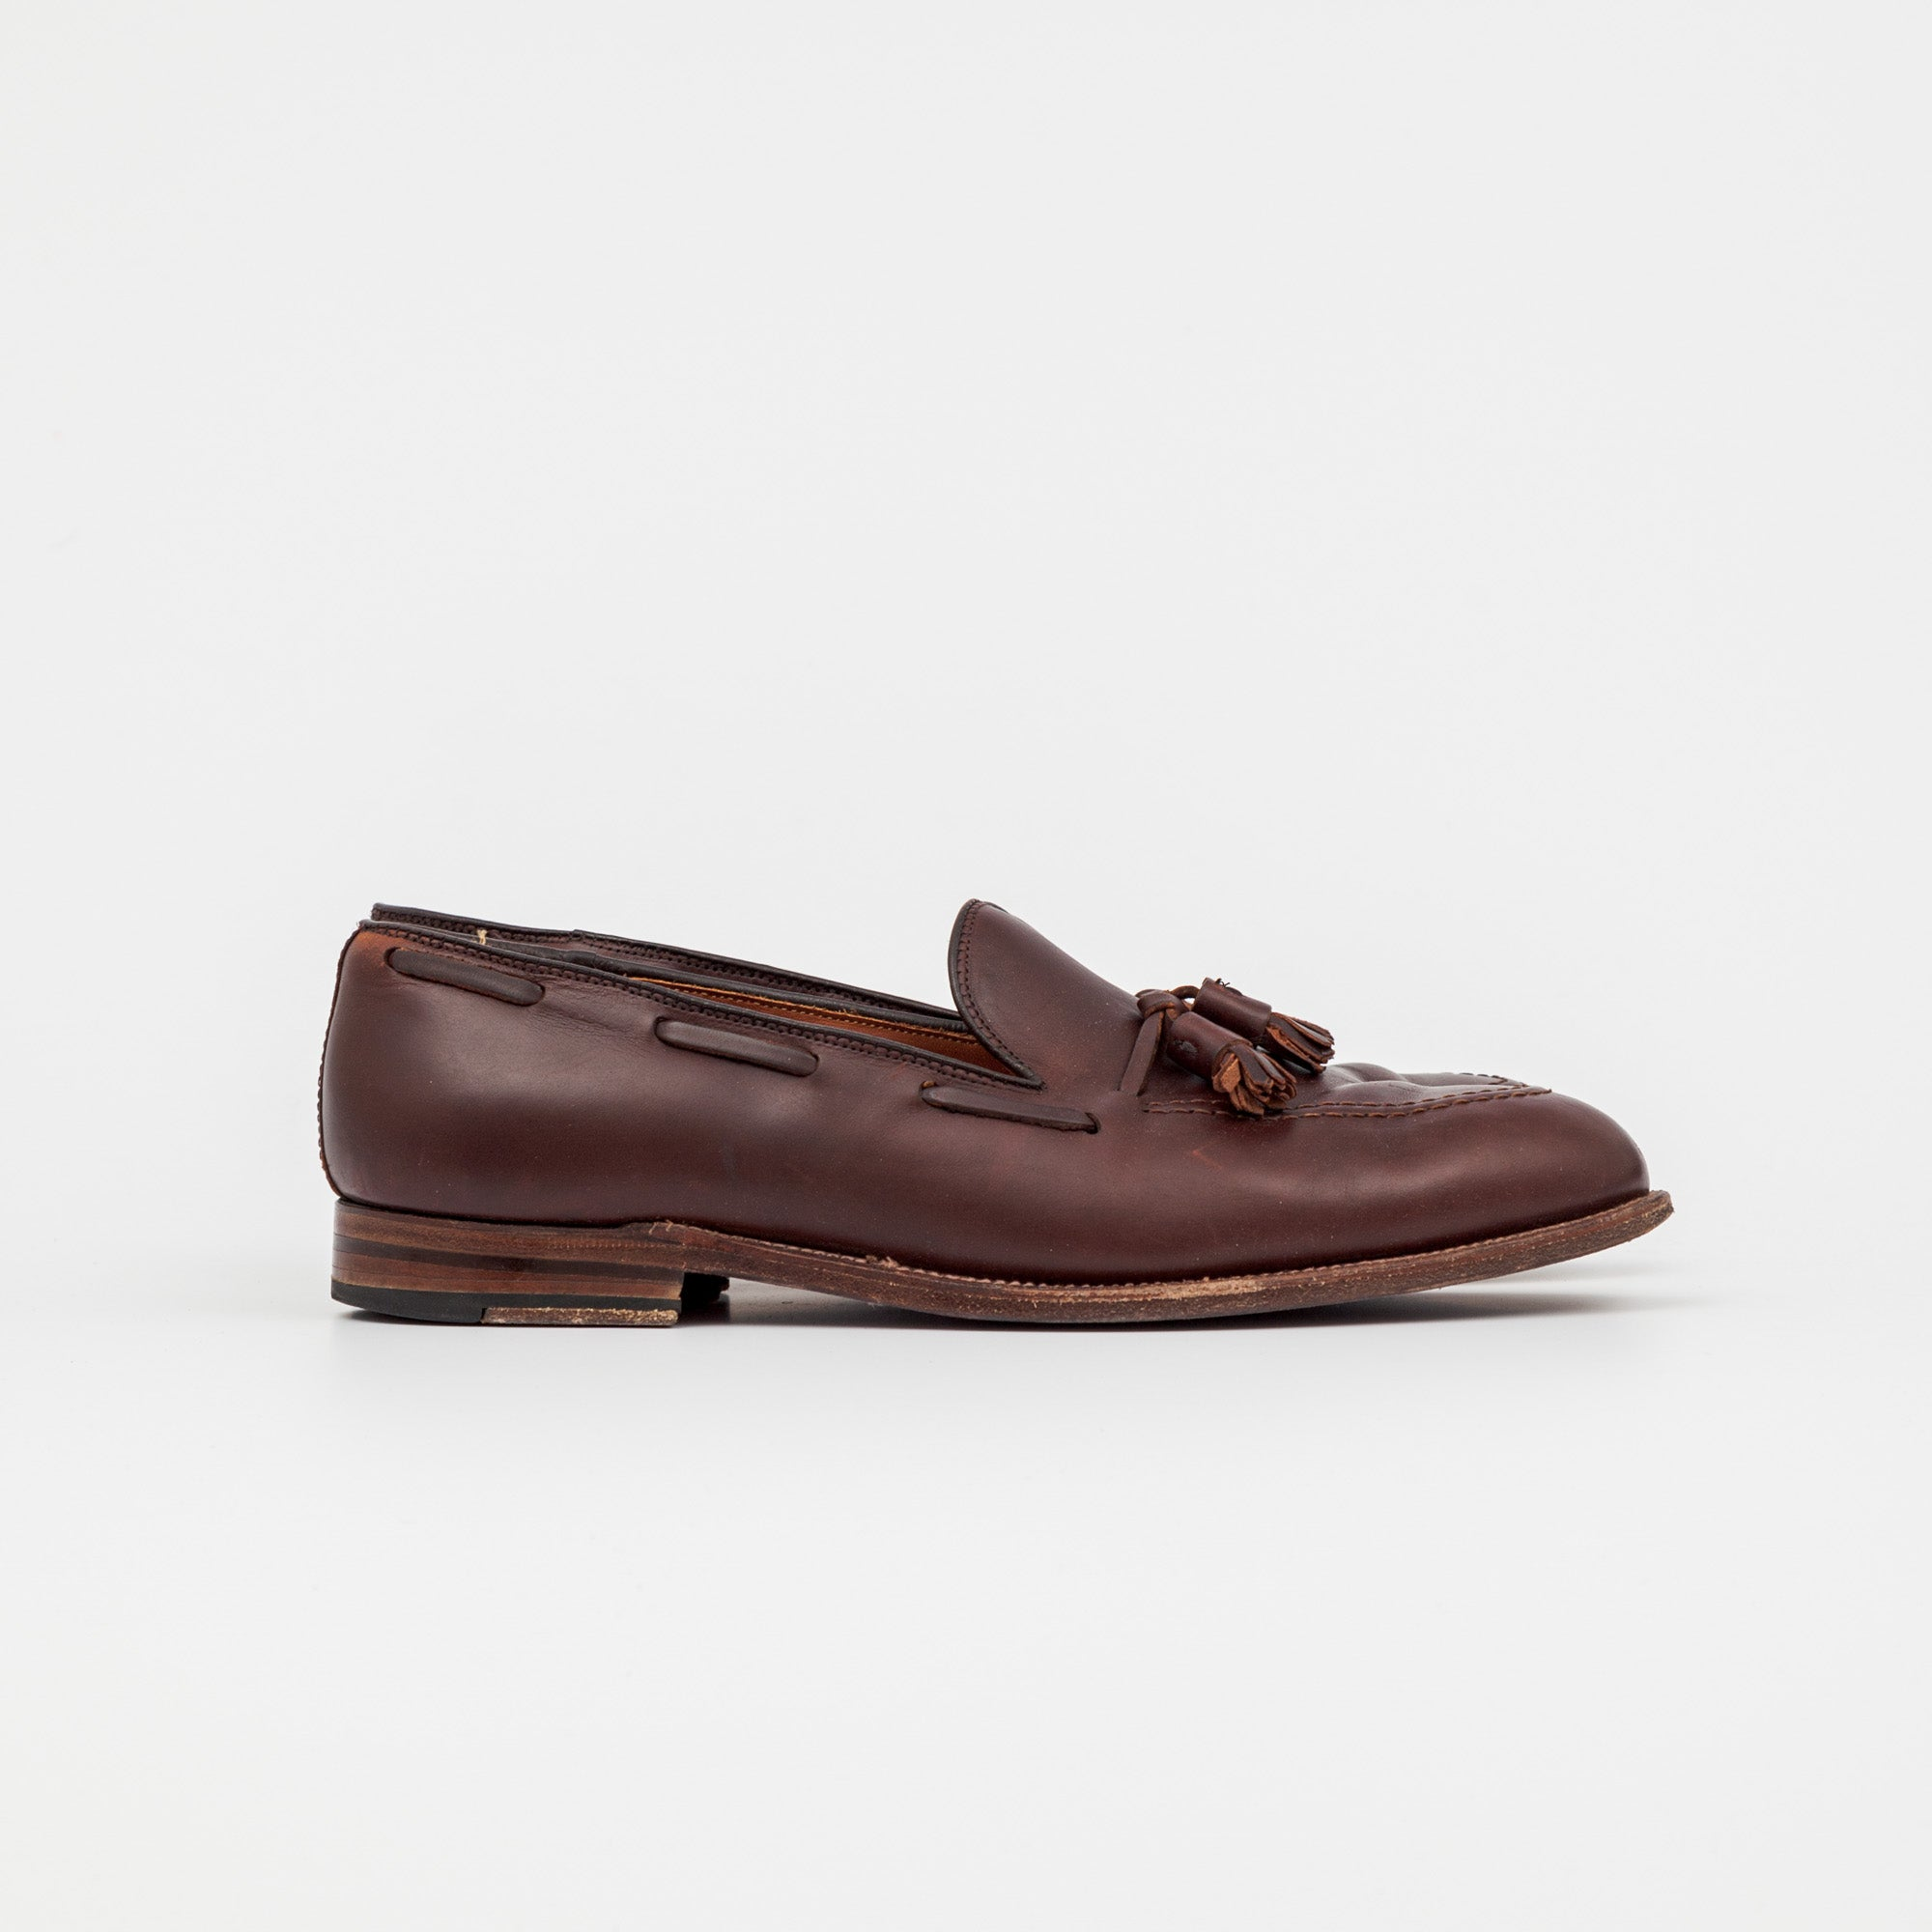 Alden x Frans Boone Chromexcel Tassel Loafers